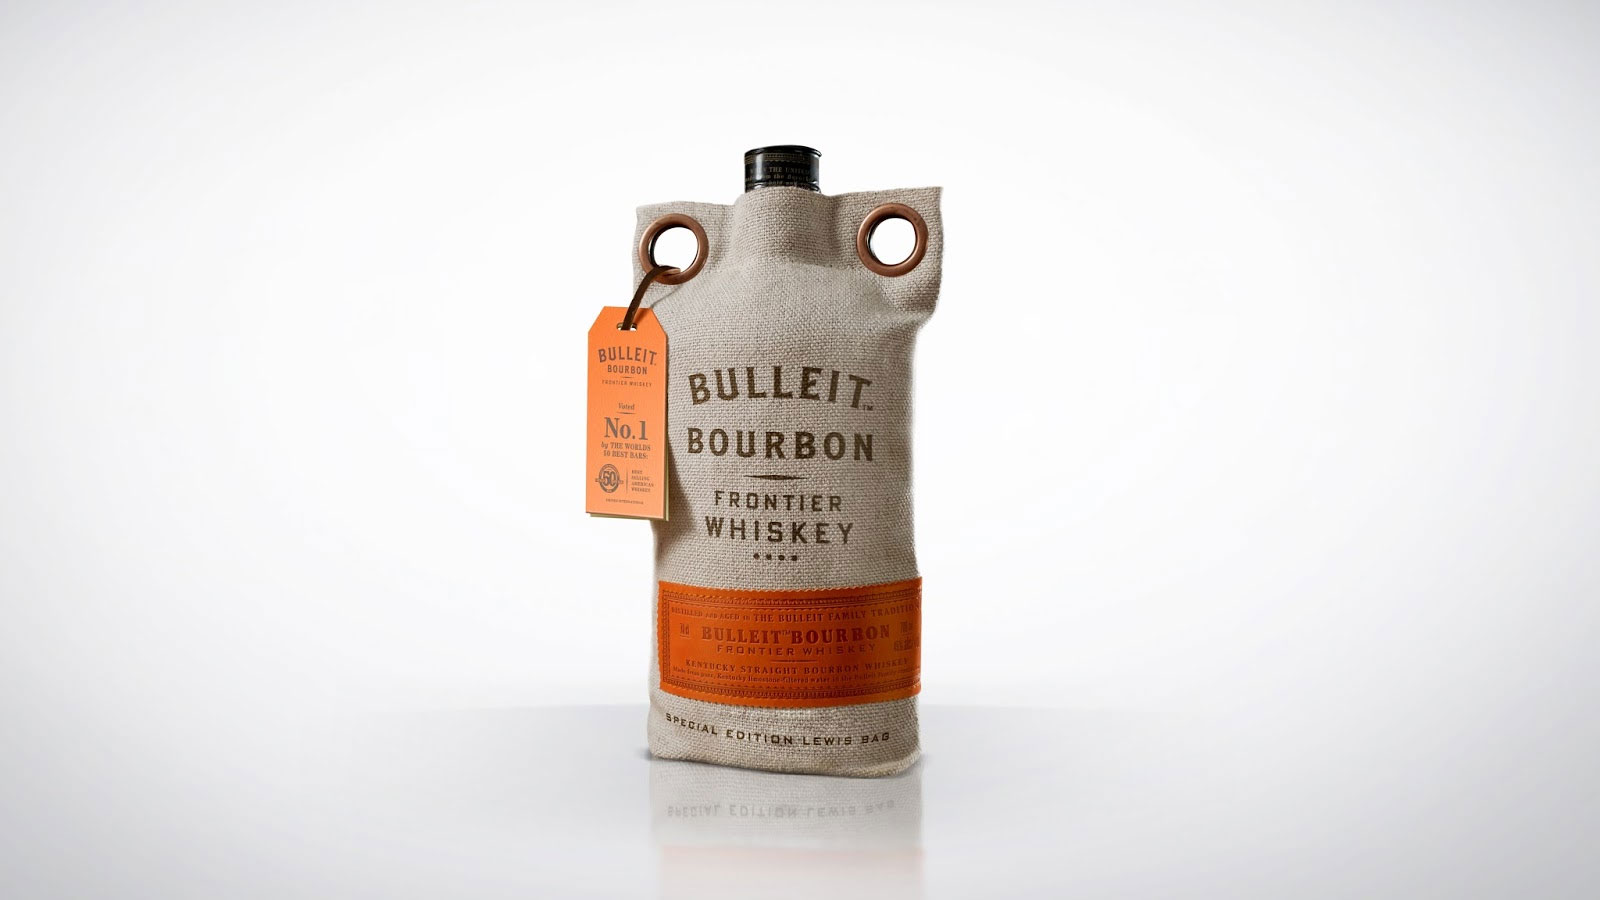 Упаковка для Bulleit Whiskey.